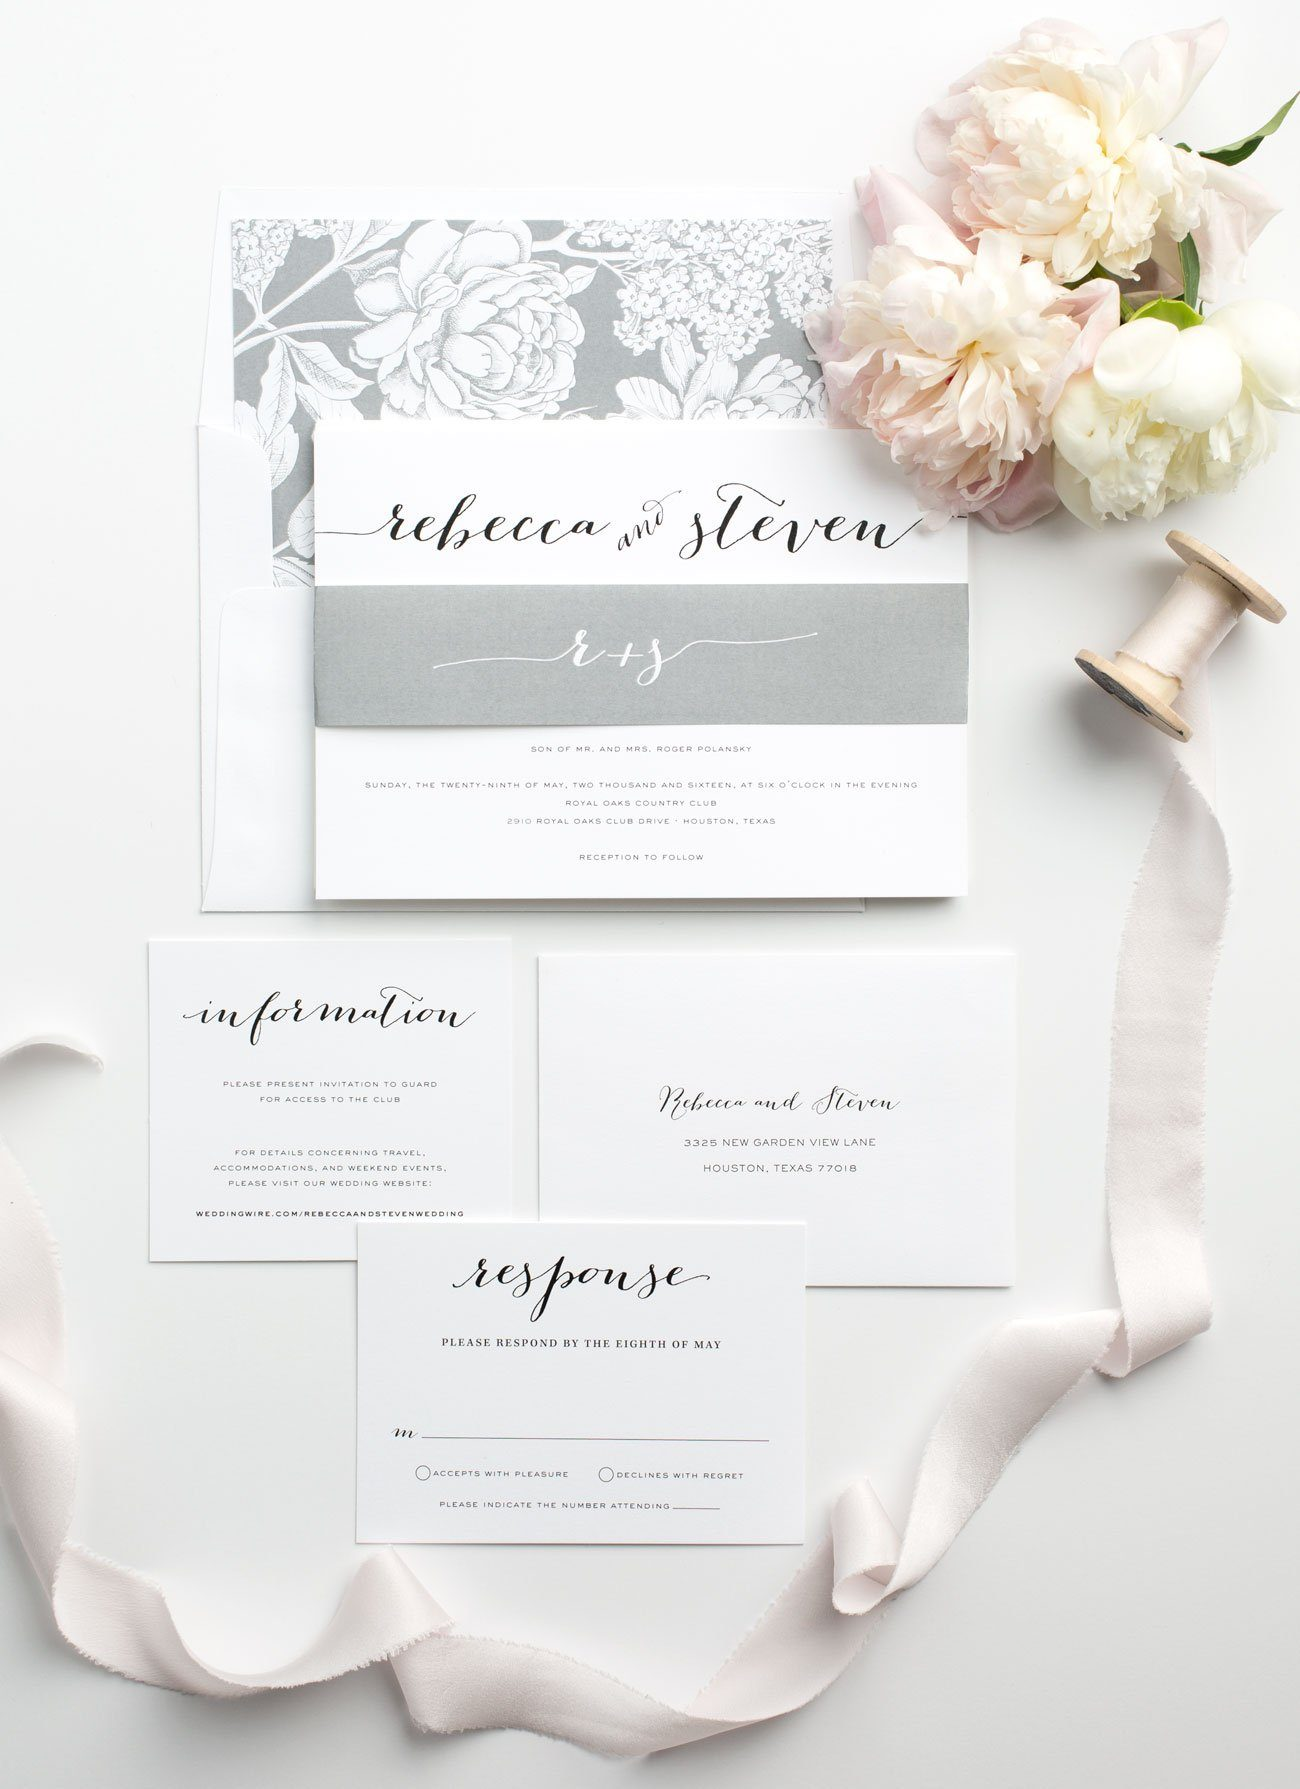 Modern Calligraphy Wedding Invitations in Gray with Floral Liner